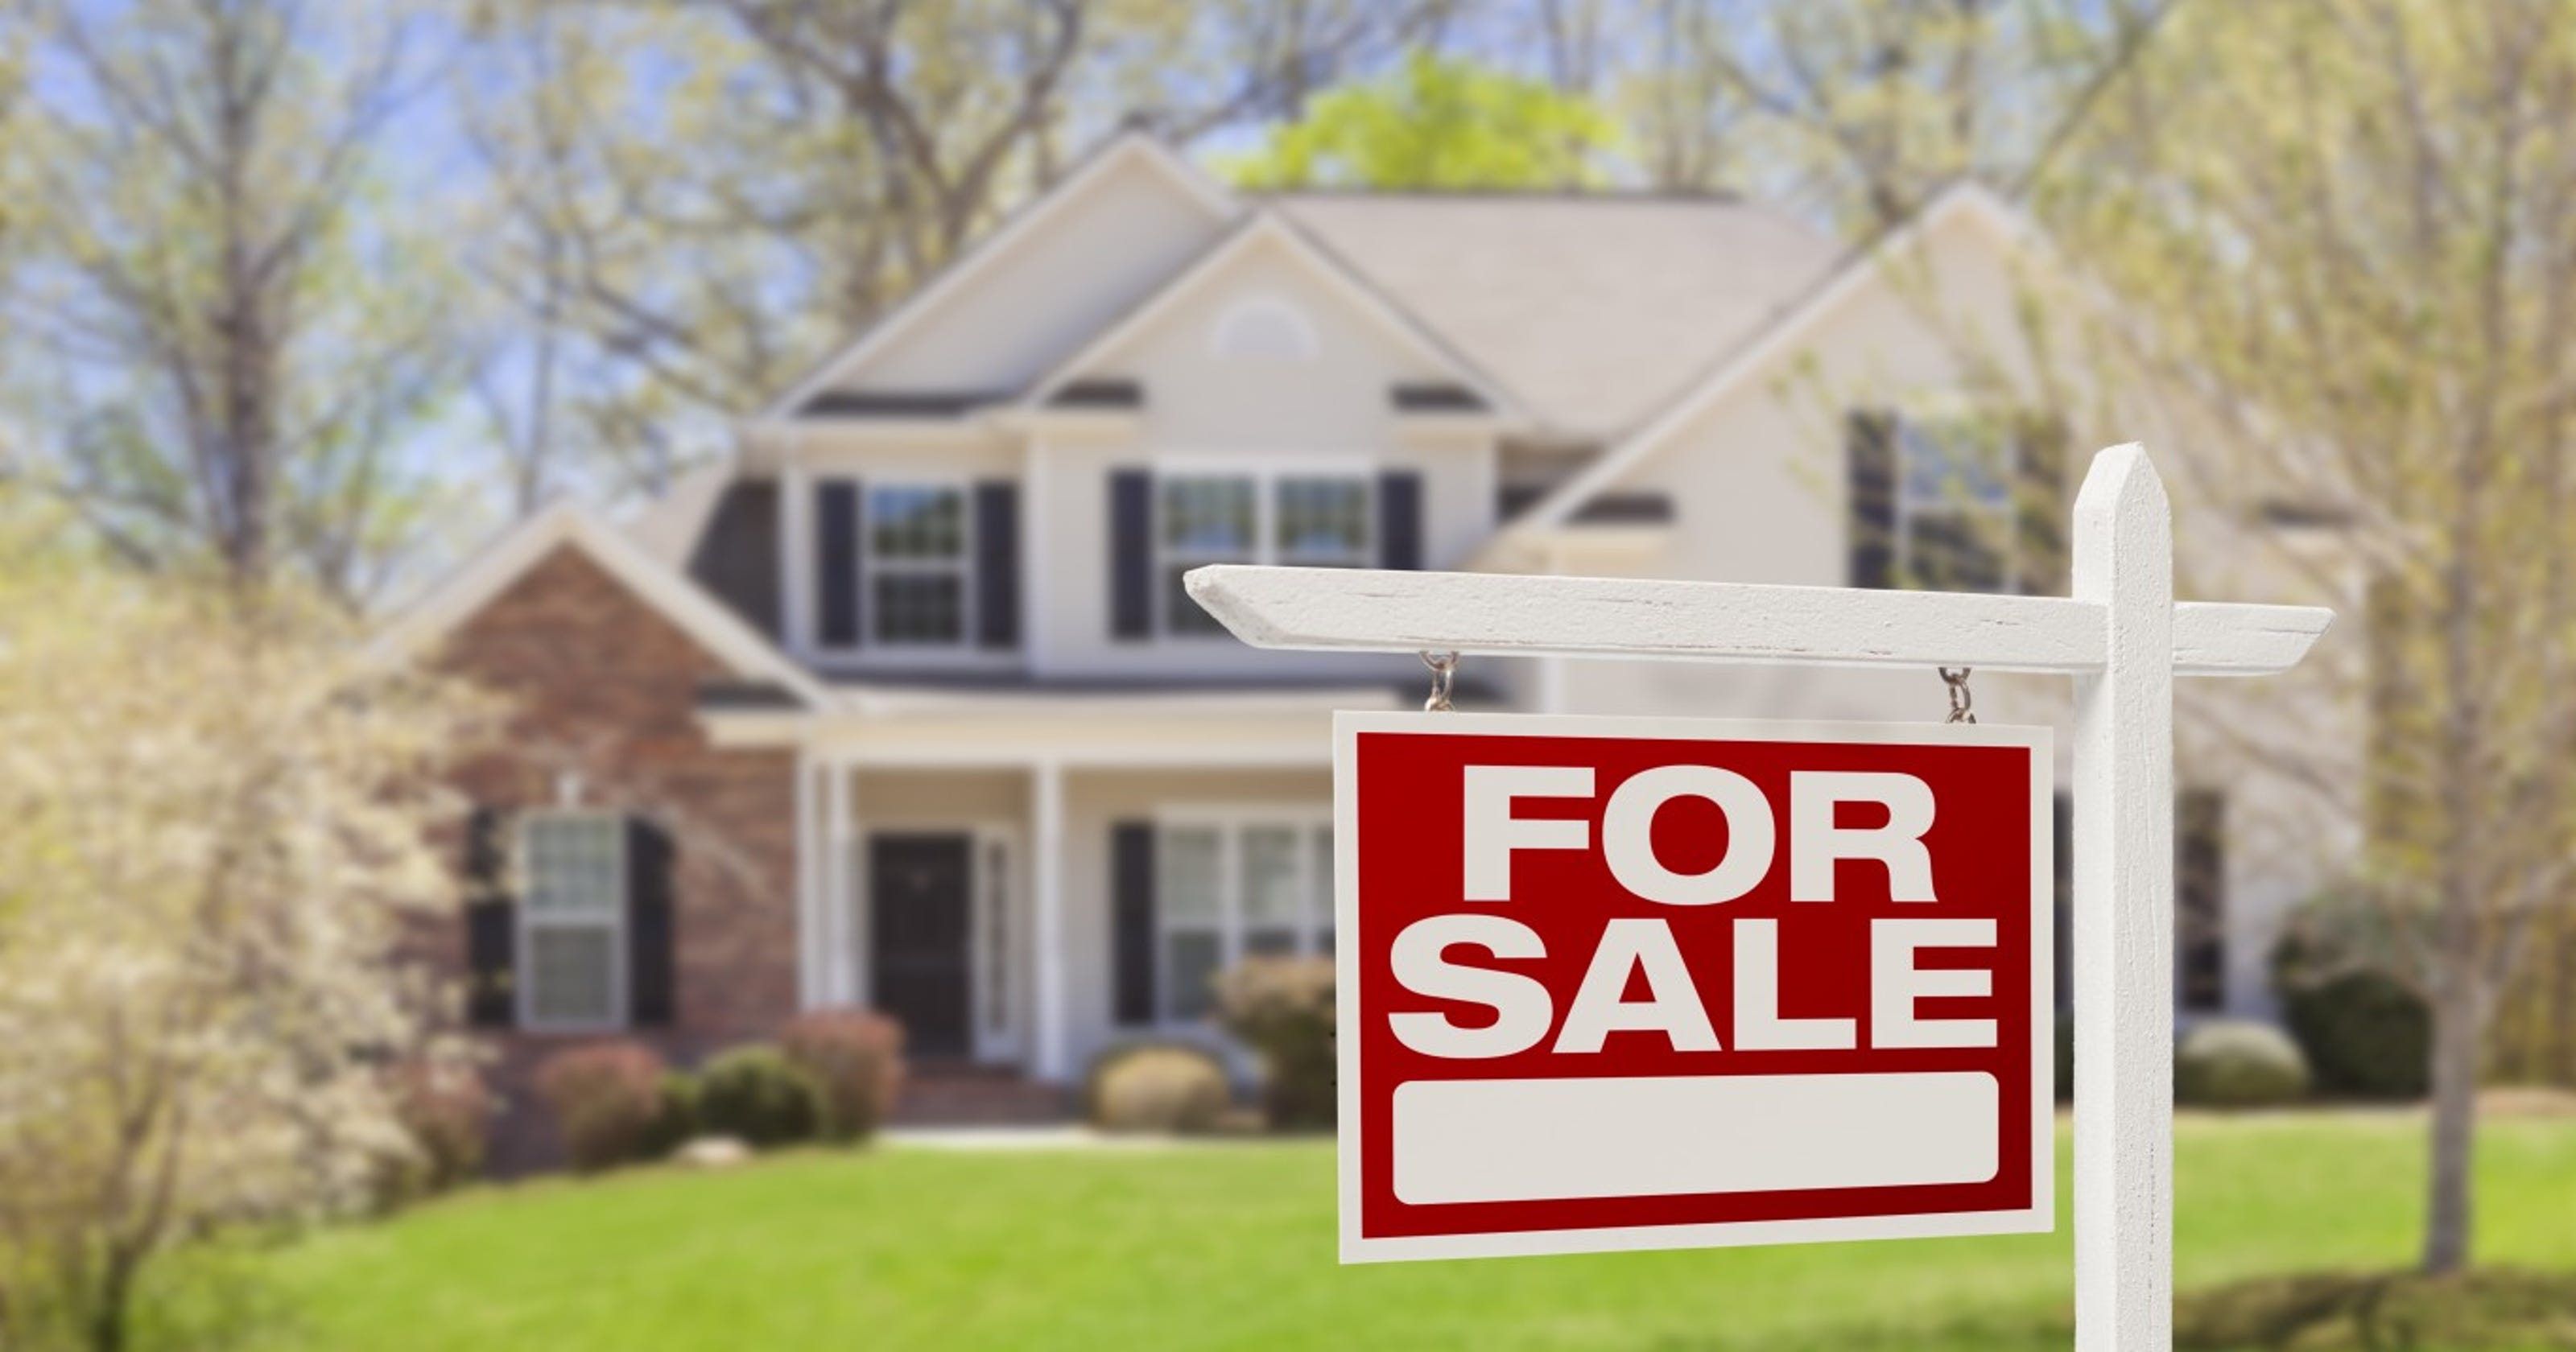 Millennials buy homes cautiously, trying to spend less on